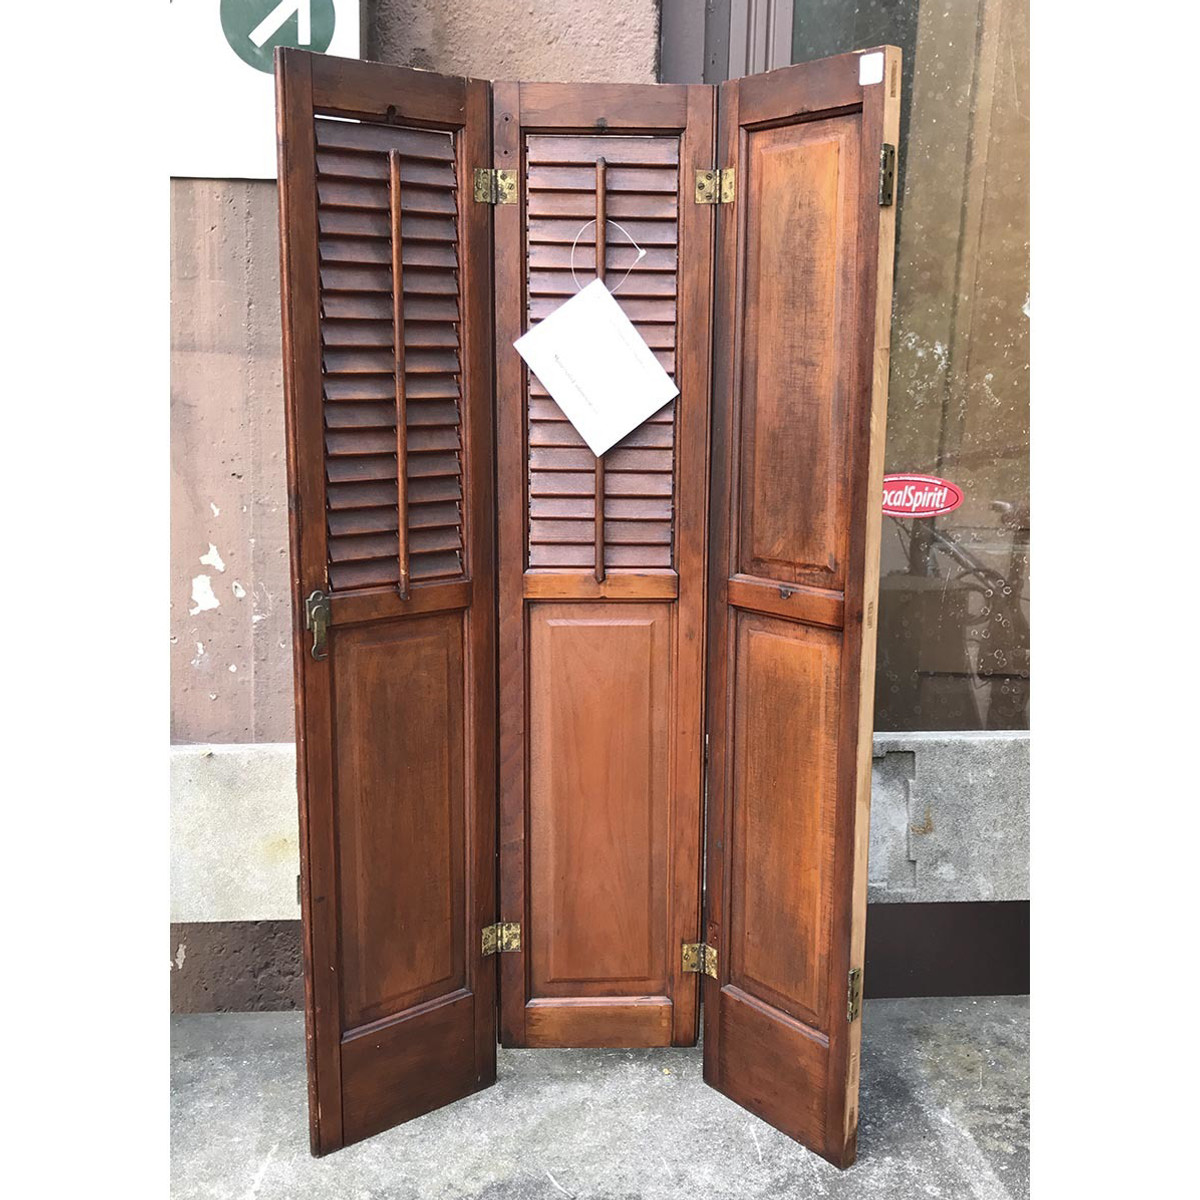 A17063 - Antique Victorian Era Pine Interior Louvered Shutters